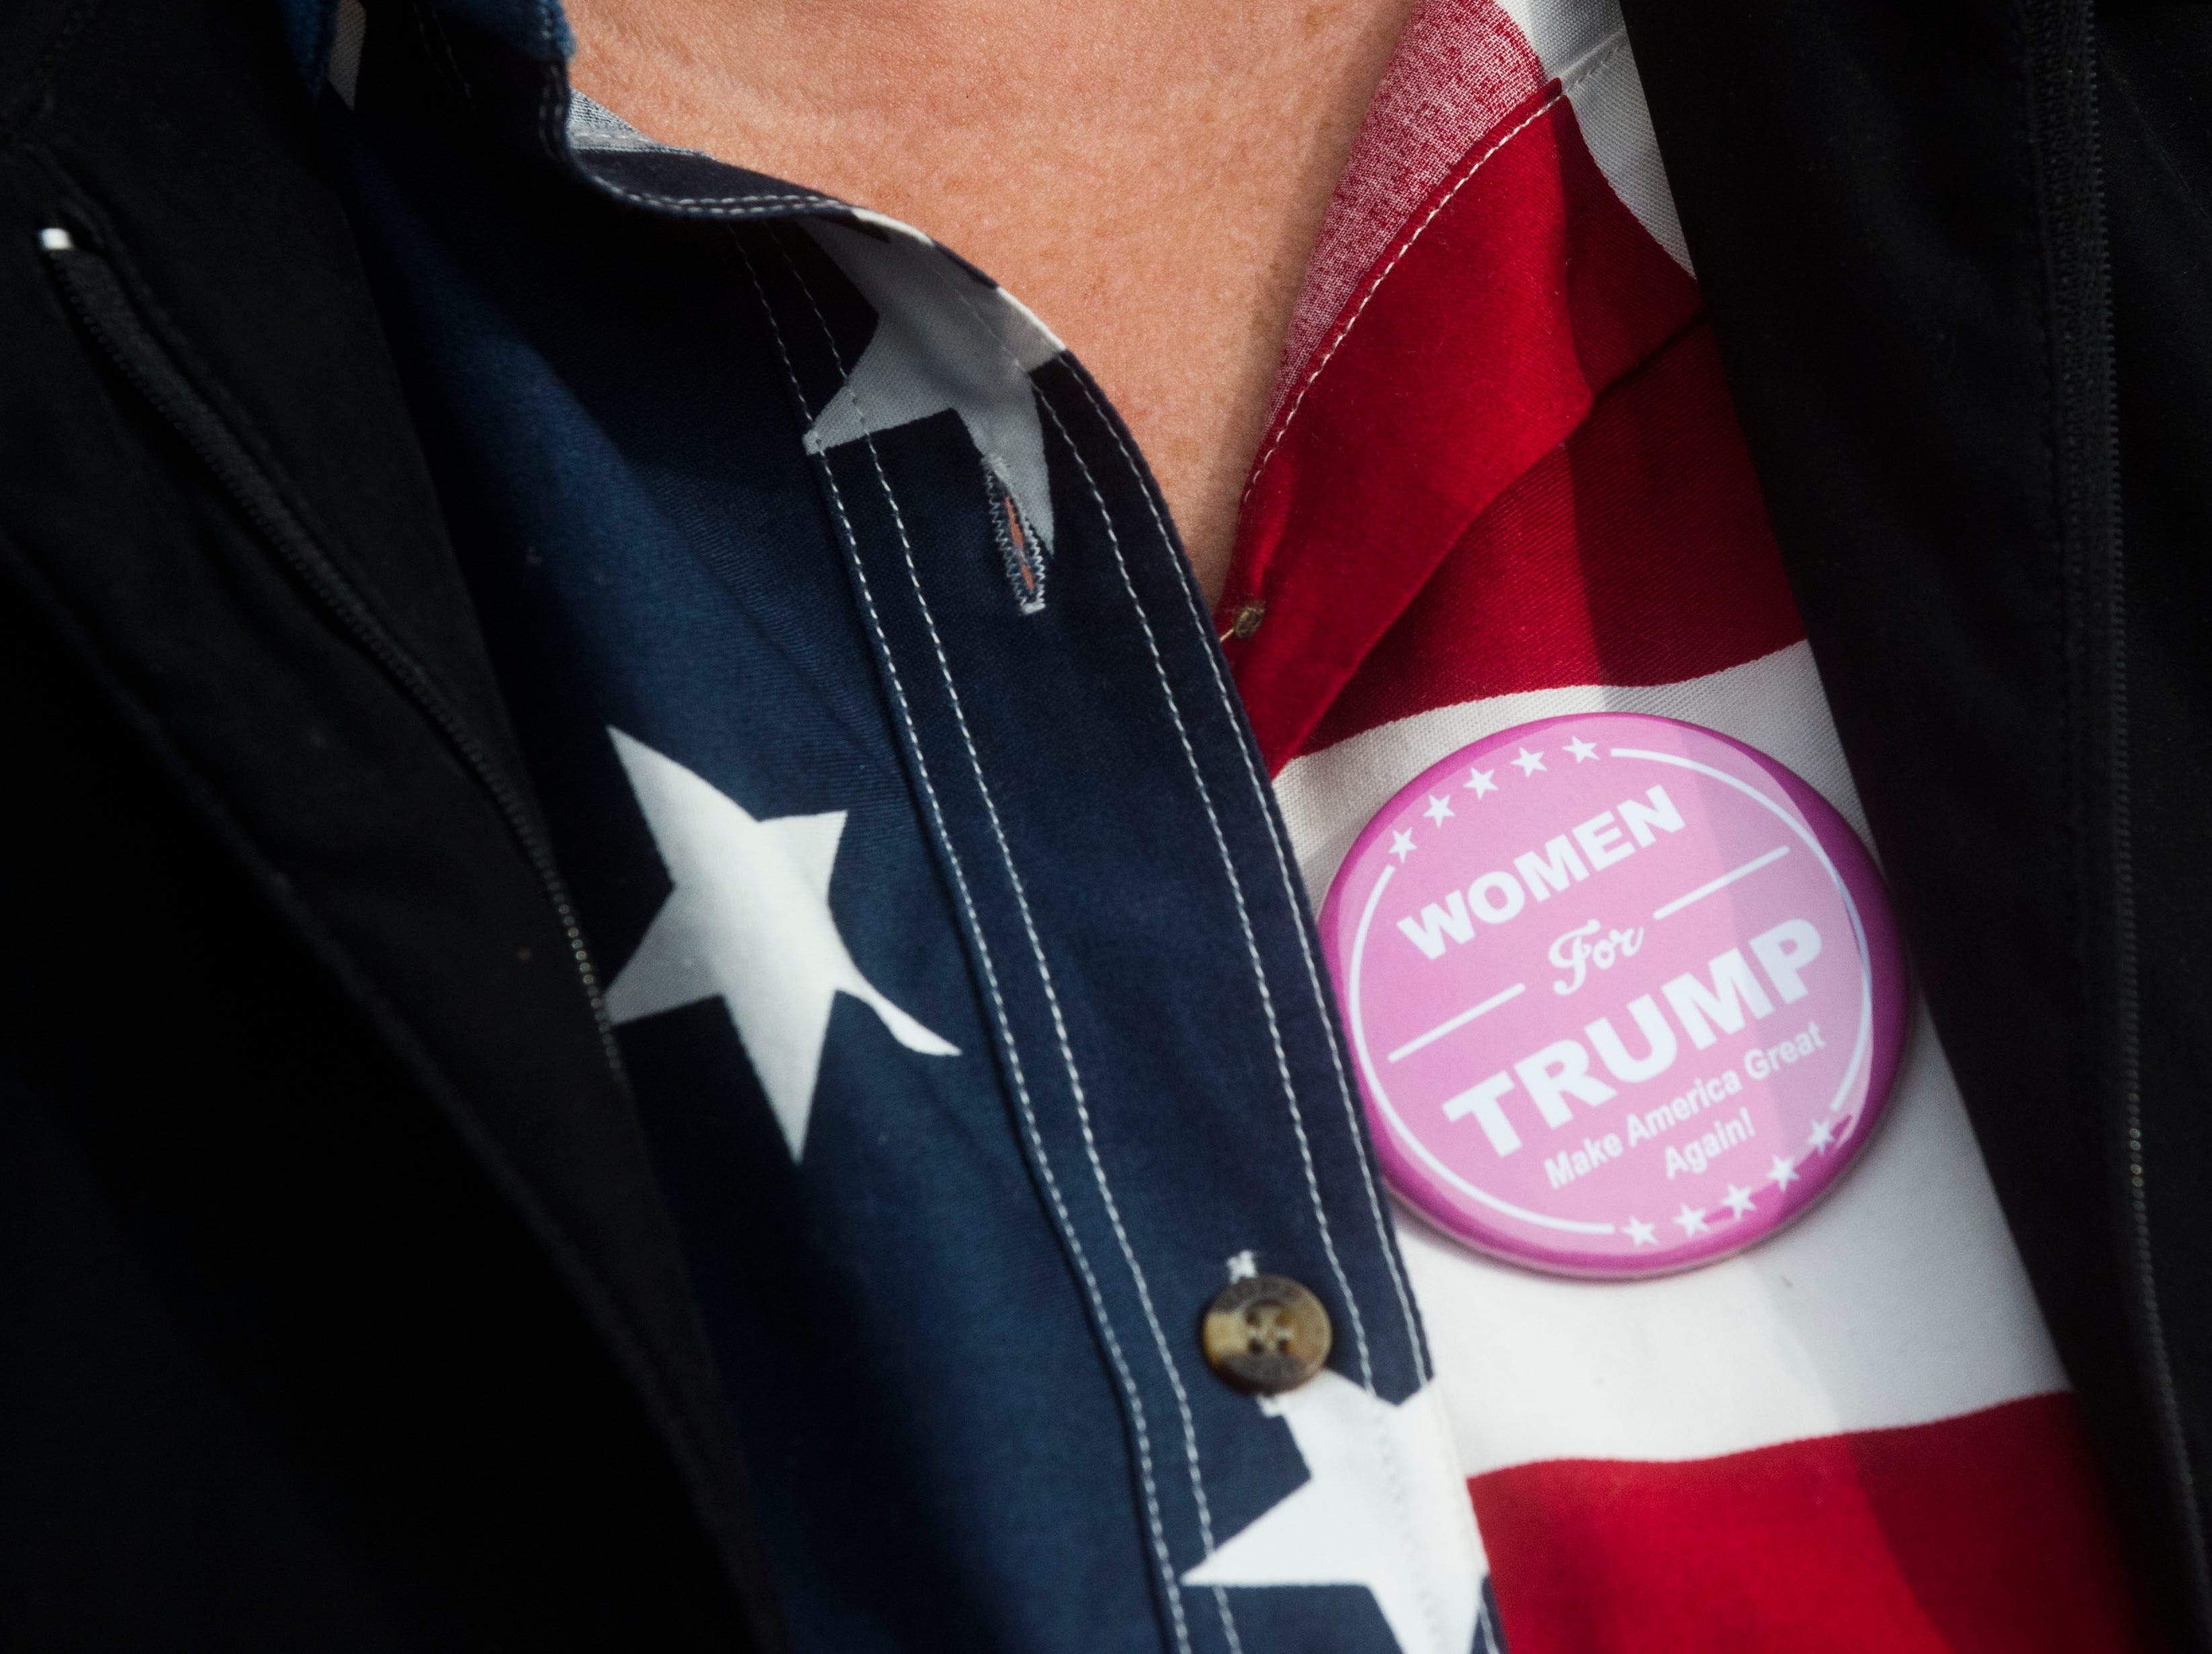 Karen Schooley of Murphy, N.C. stands at the front of the line before a Donald Trump rally in support of U.S. Rep. Marsha Blackburn for the U.S. Senate at McKenzie Arena in Chattanooga, Sunday, Nov. 4, 2018.